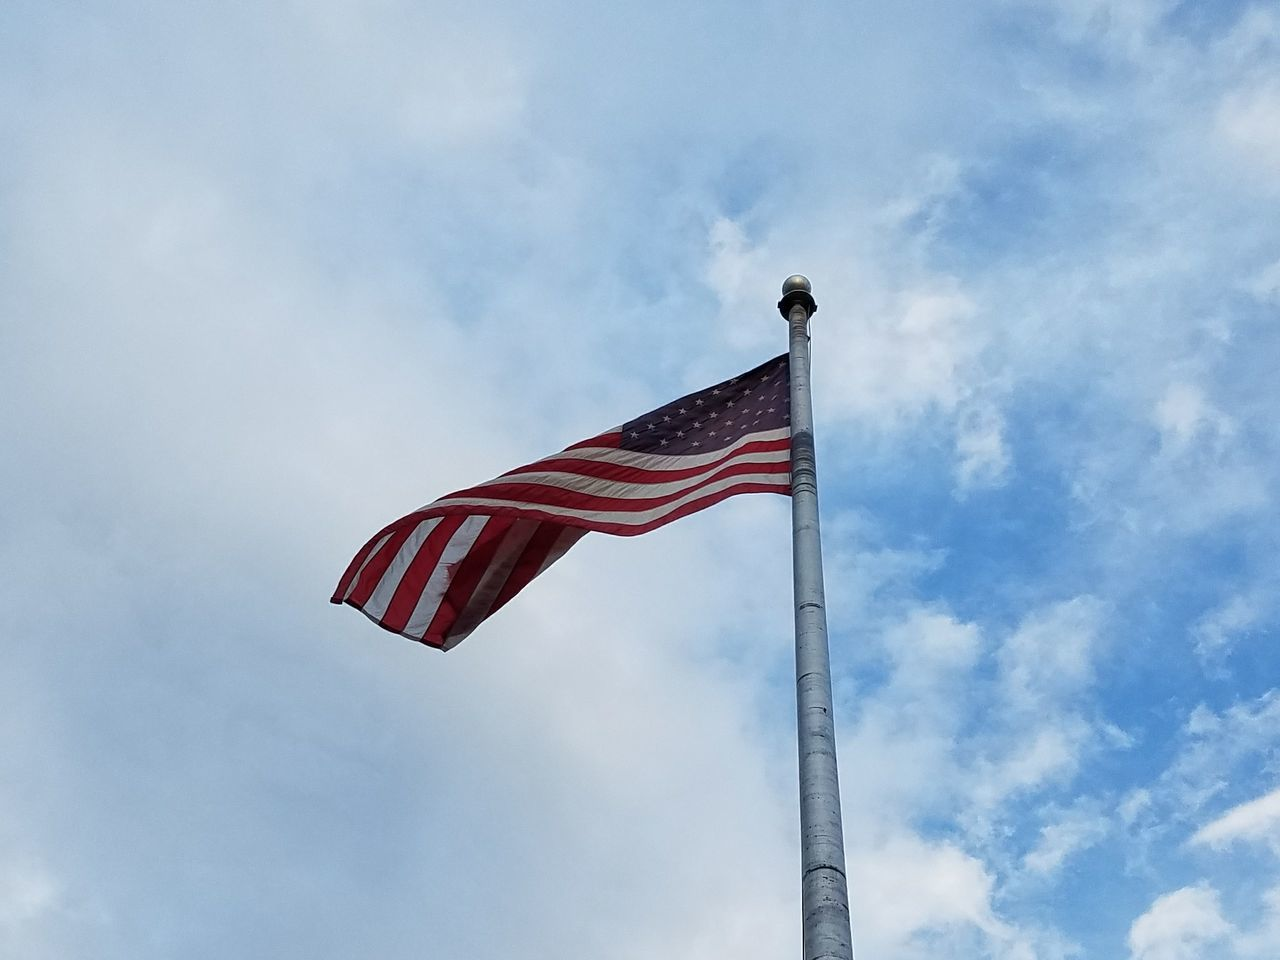 patriotism, flag, low angle view, striped, stars and stripes, flag pole, sky, no people, red, day, pride, outdoors